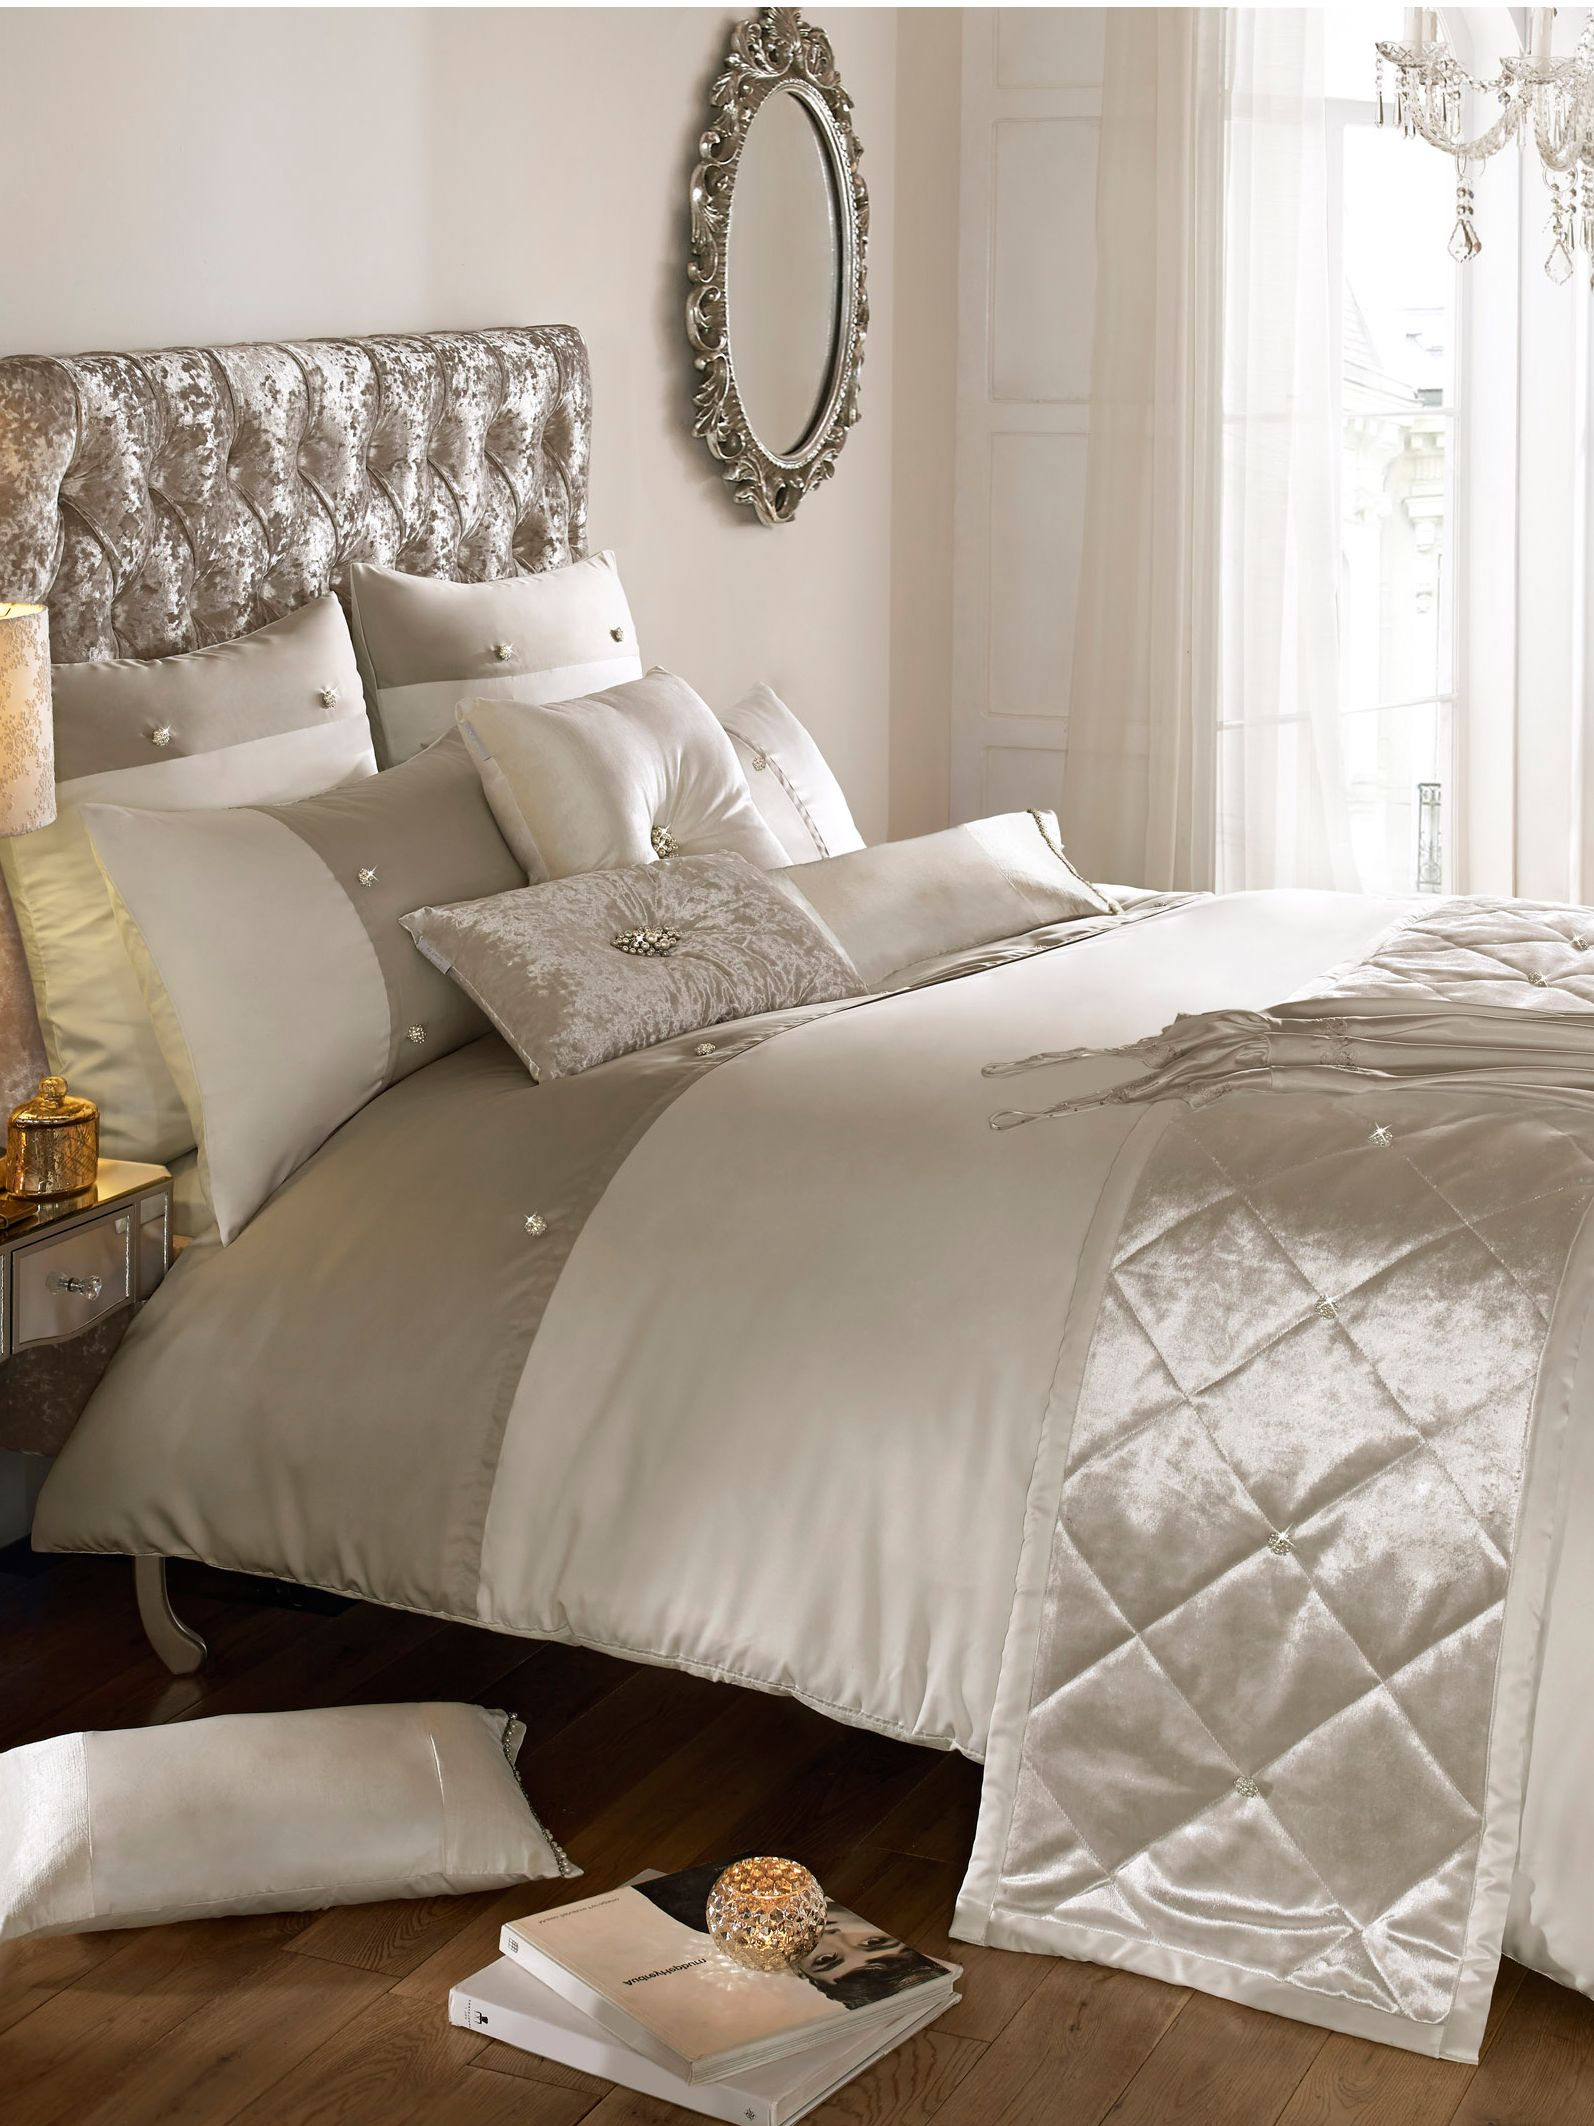 Catarina oyster super king duvet set